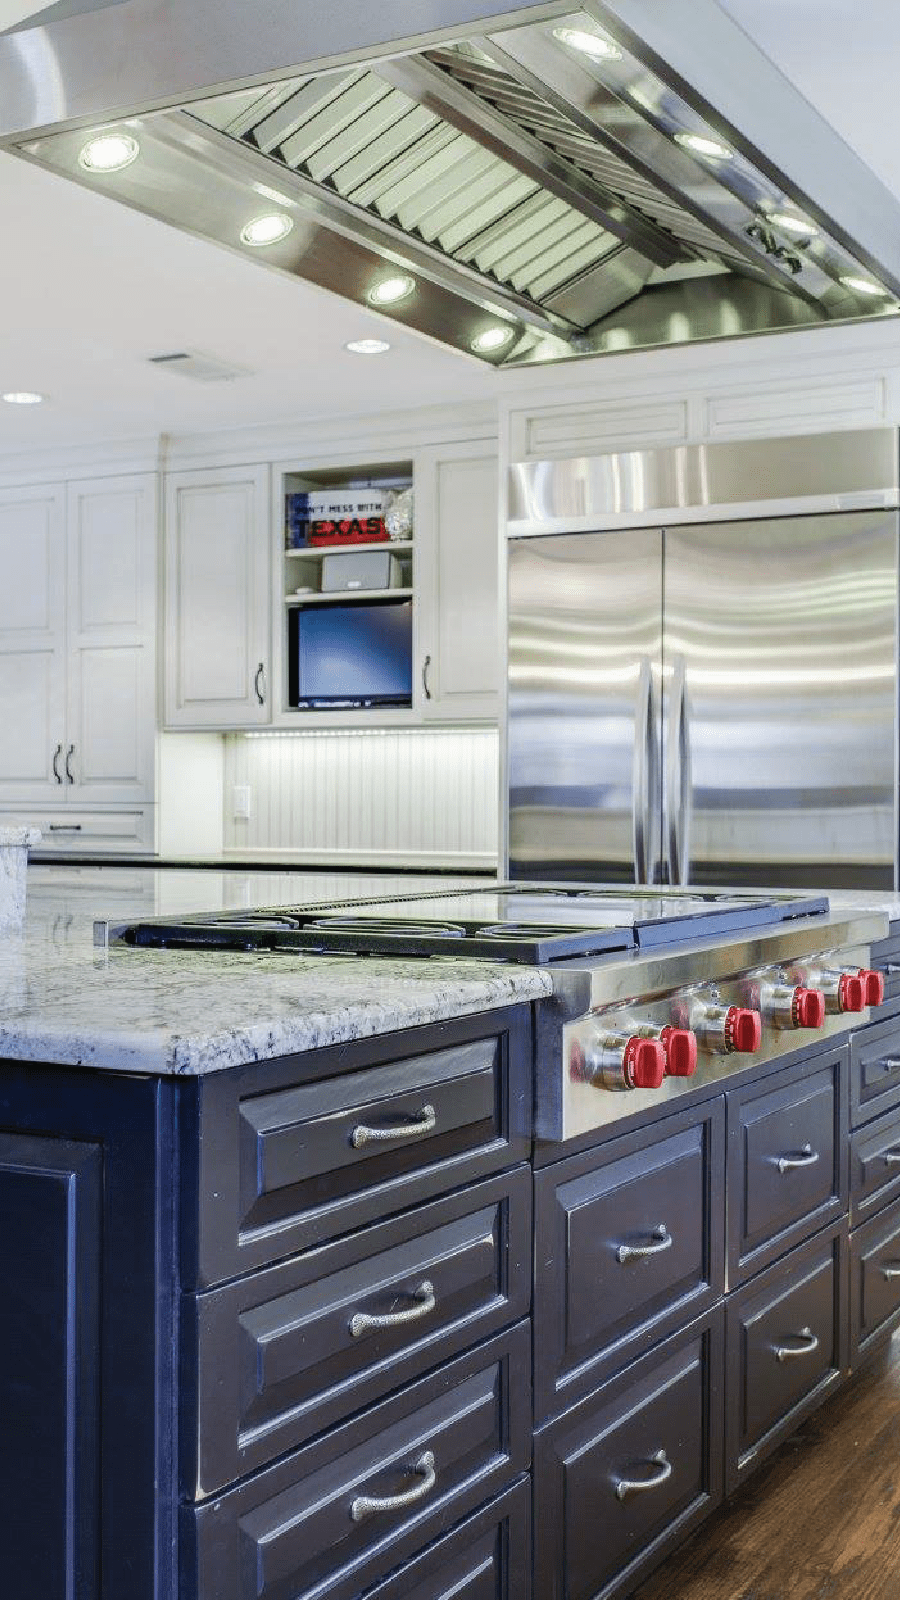 37 fantastic kitchen vent hood ideas stainless steel kitchen vent hood kitchen vent outdoor on outdoor kitchen vent hood ideas id=77346